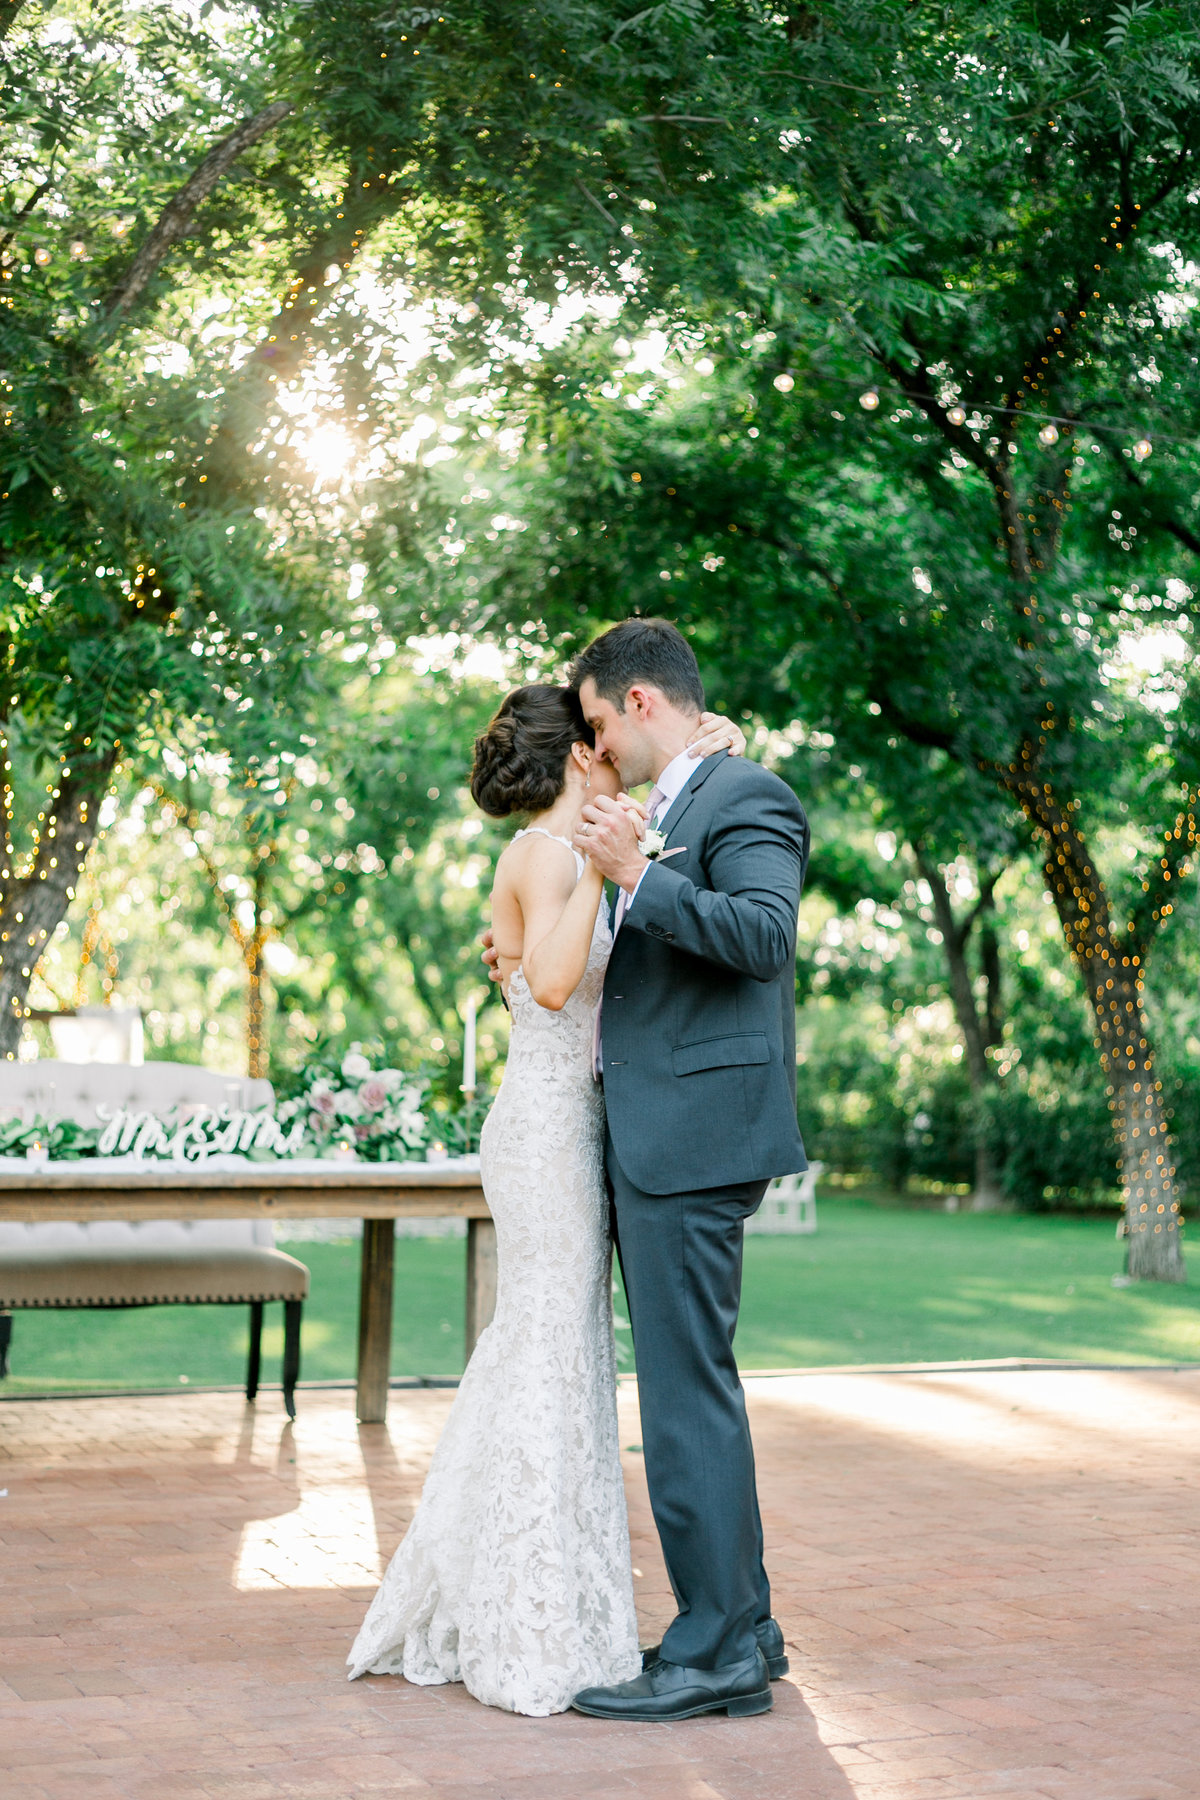 Karlie Colleen Photography - Venue At The Grove - Arizona Wedding - Maggie & Grant -102